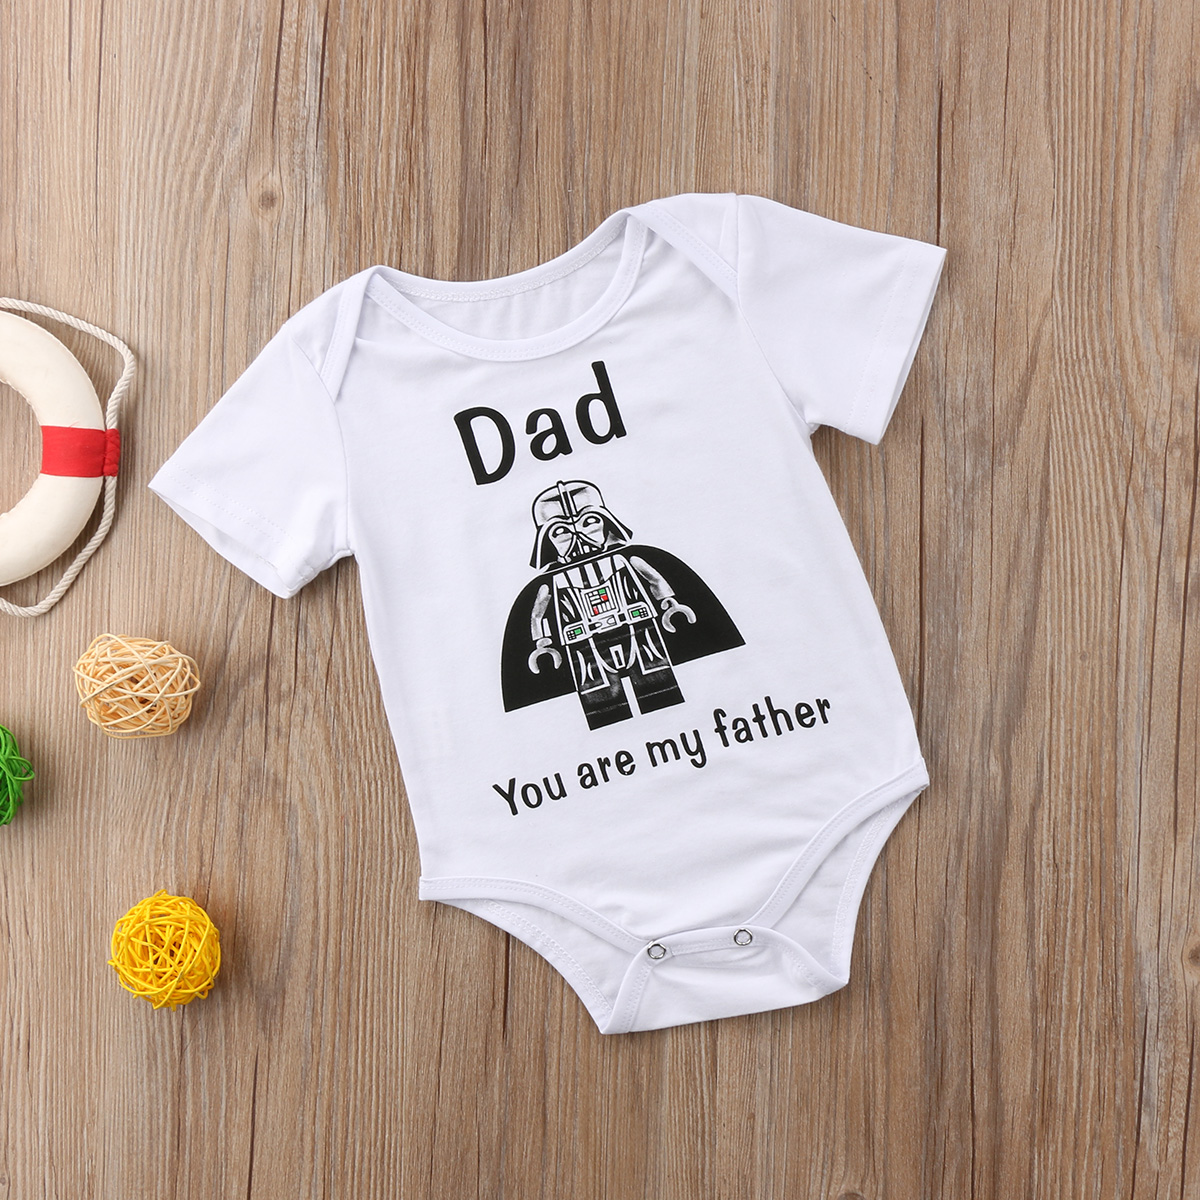 Summer Newborn Infant Toddler Baby Boy Clothes Bodysuits Cartoon Star War Bodysuit Jumpsuit Outfit Clothes